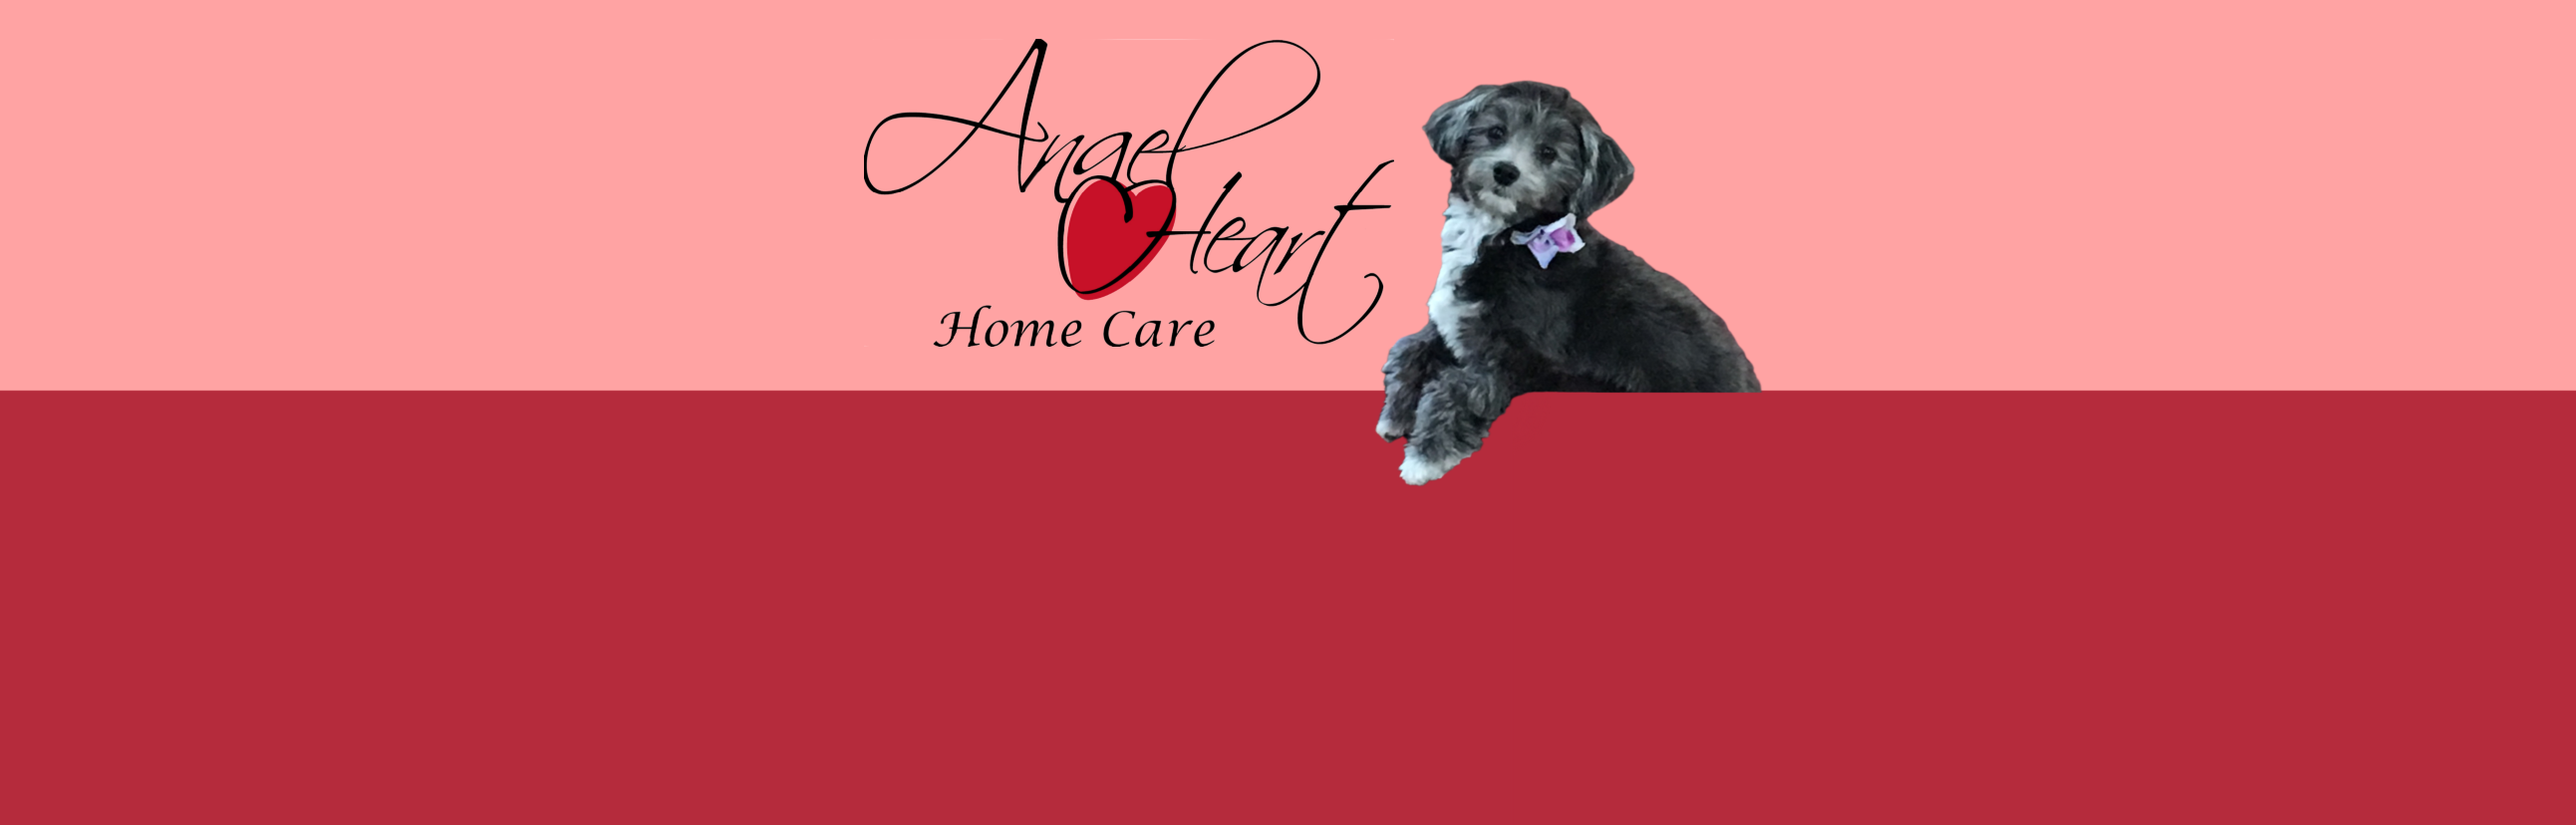 Abby the Dog with Angel Heart Logo | Angel Heart Home Care | The Best Care for Your Loved Ones